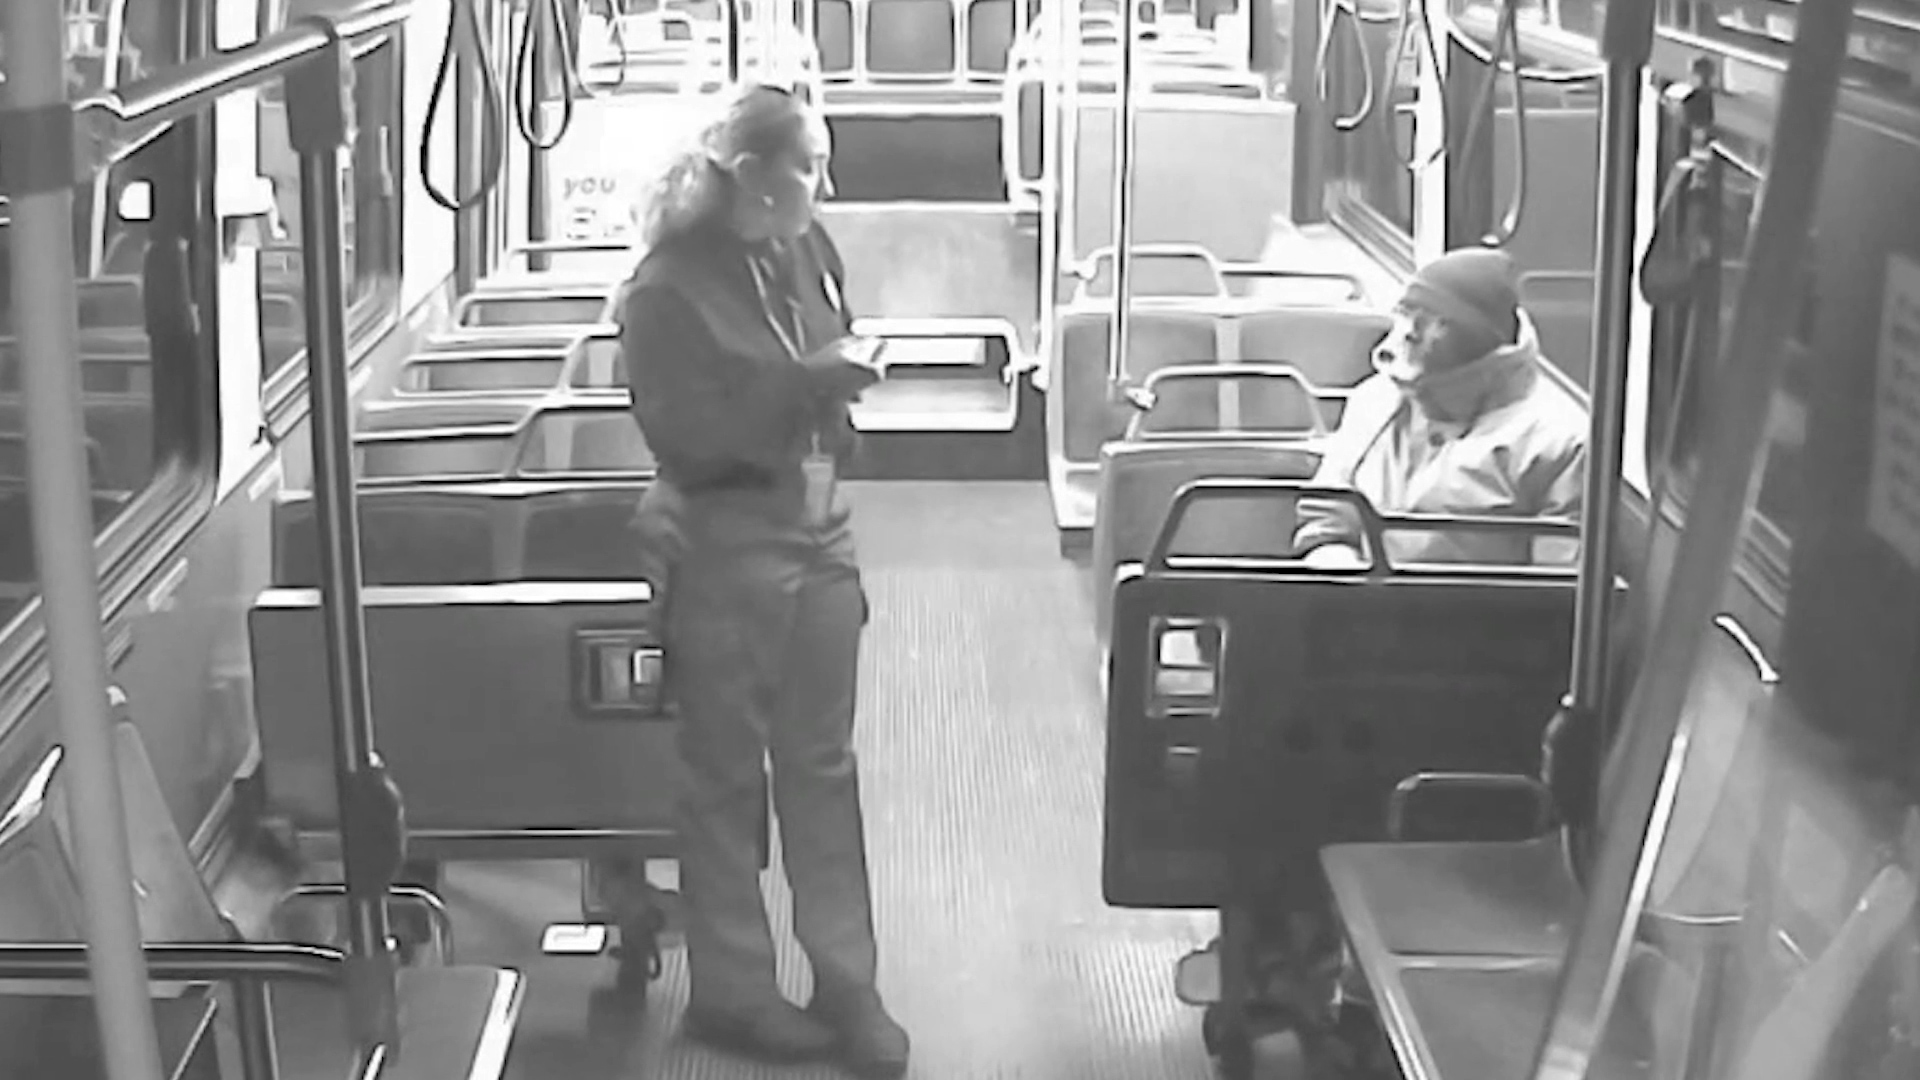 Milwaukee bus driver rescues lost baby on route